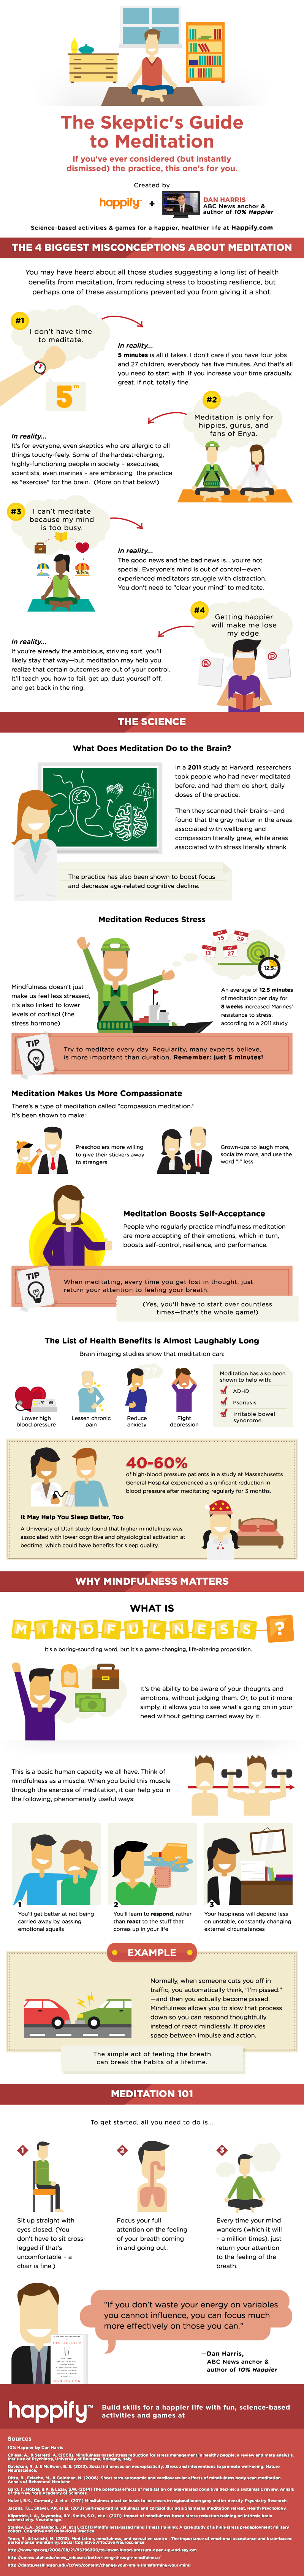 Skeptics guide to meditation